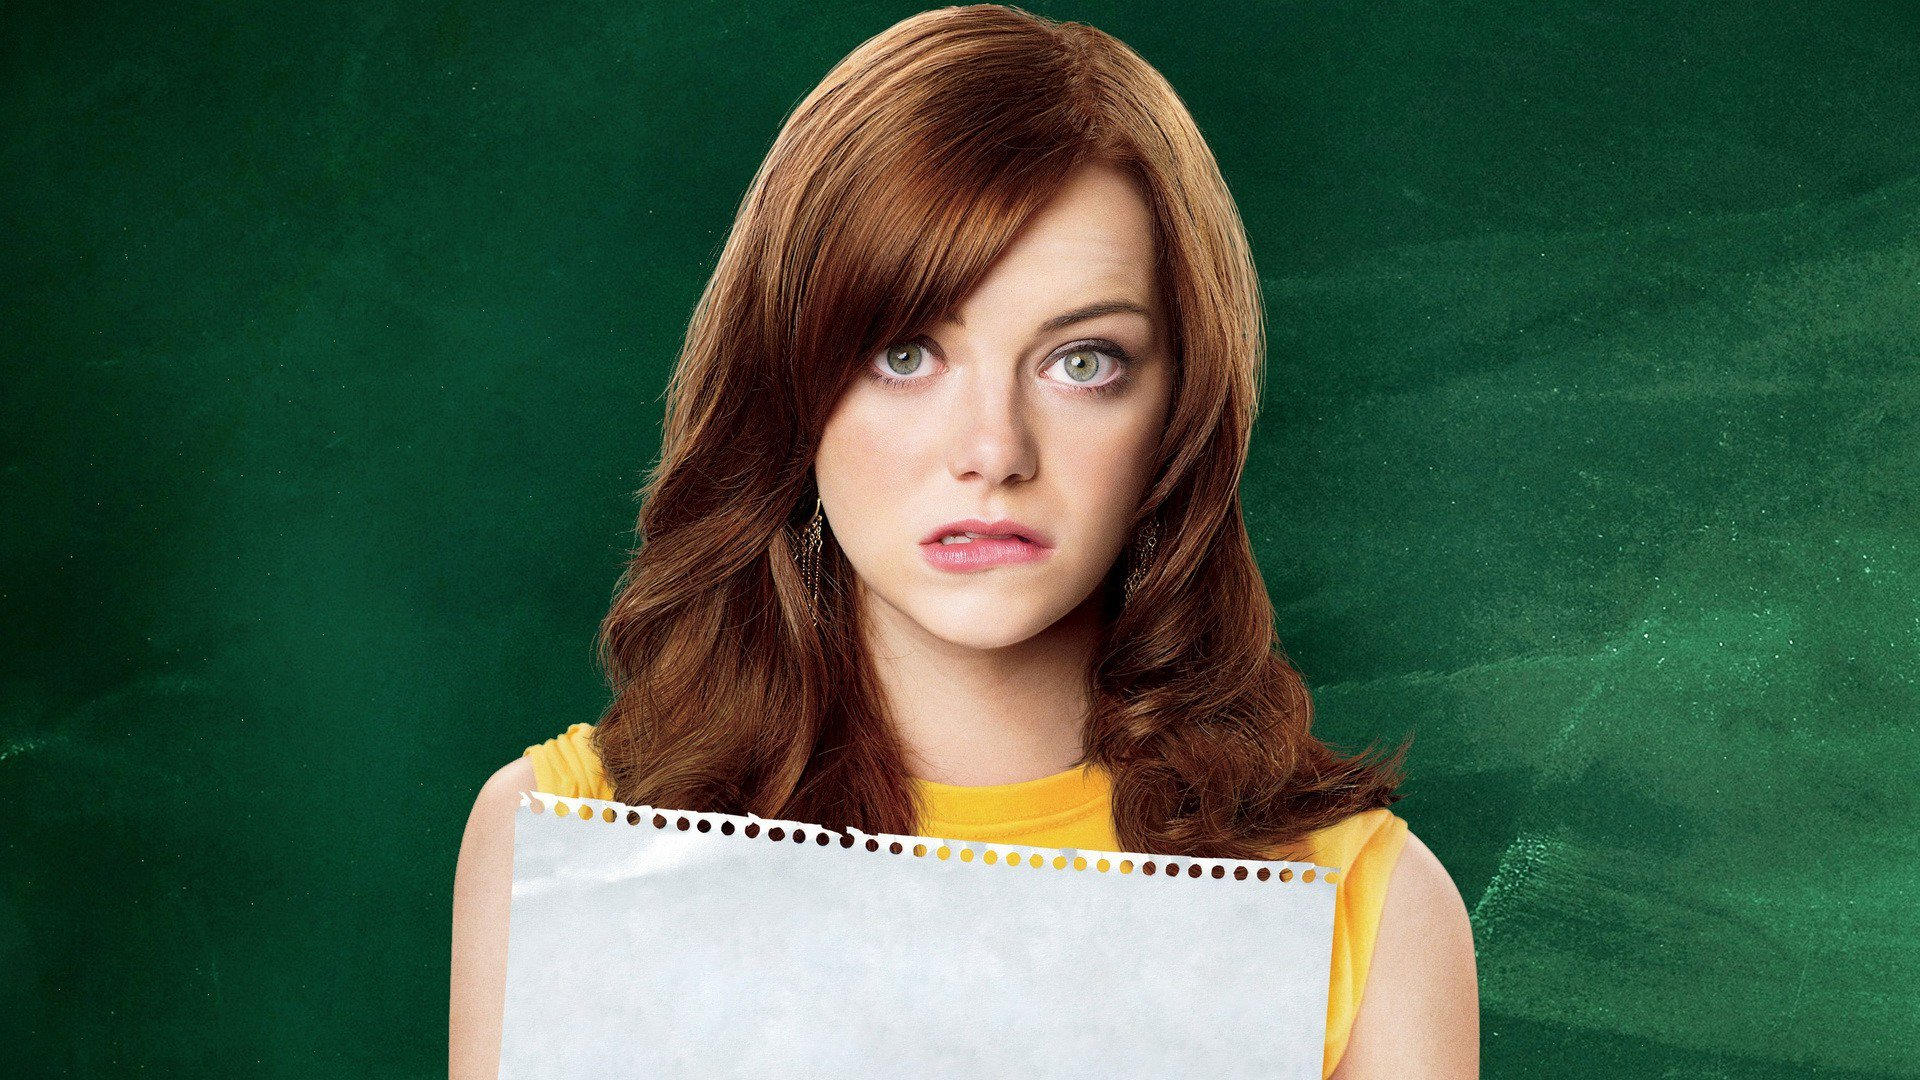 Olive emma stone hd celebrities 4k wallpapers images - Emma stone wallpaper ...